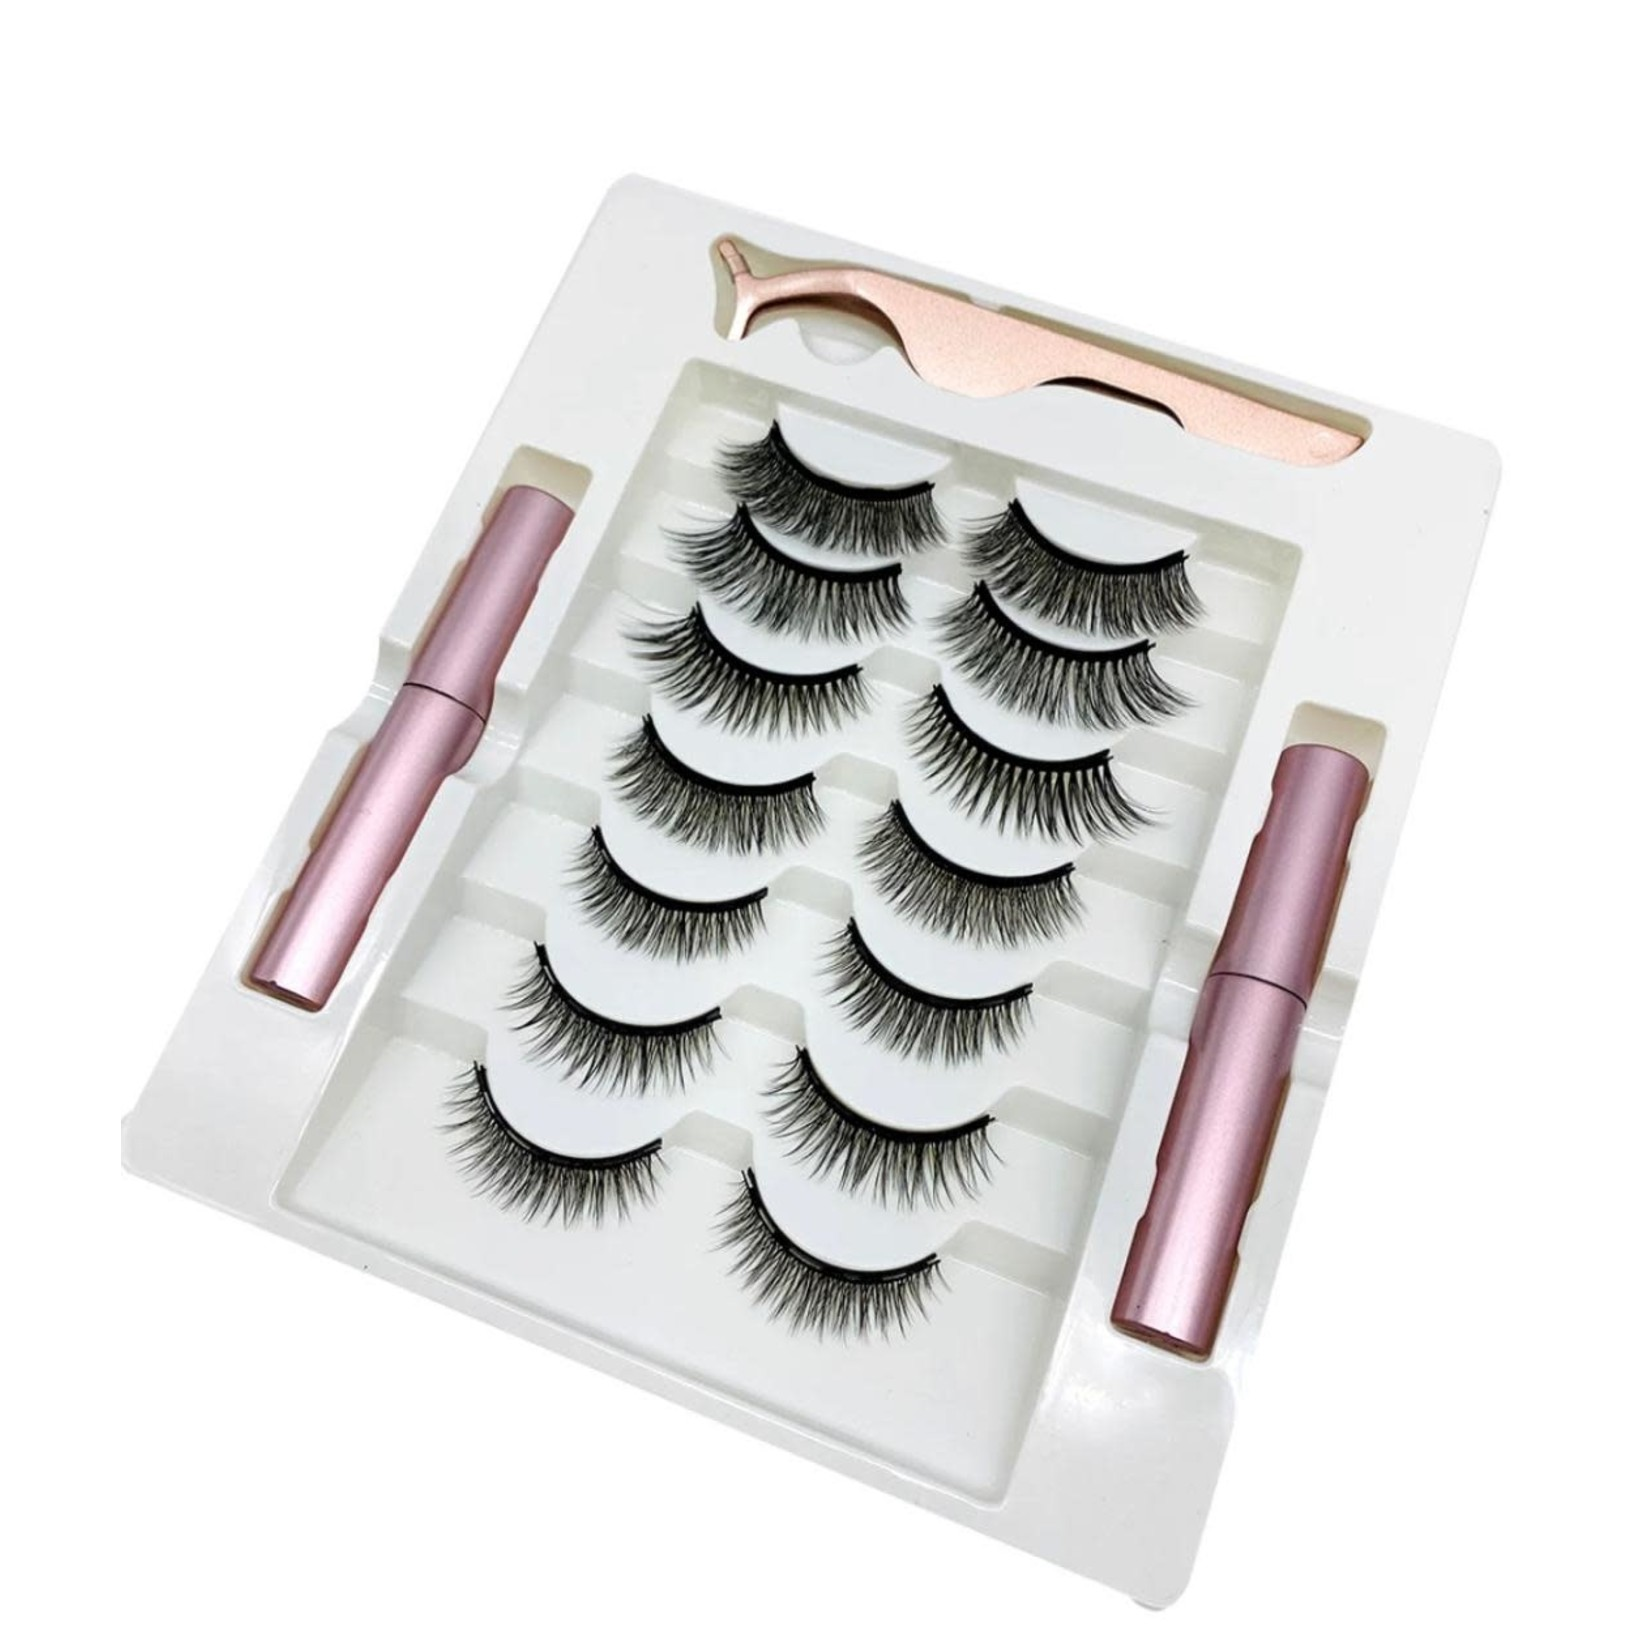 712 - 7 VARIOUS SIZE MAGNETIC LASHES 2 EYELINER'S AND 1 LASH APPLICATOR